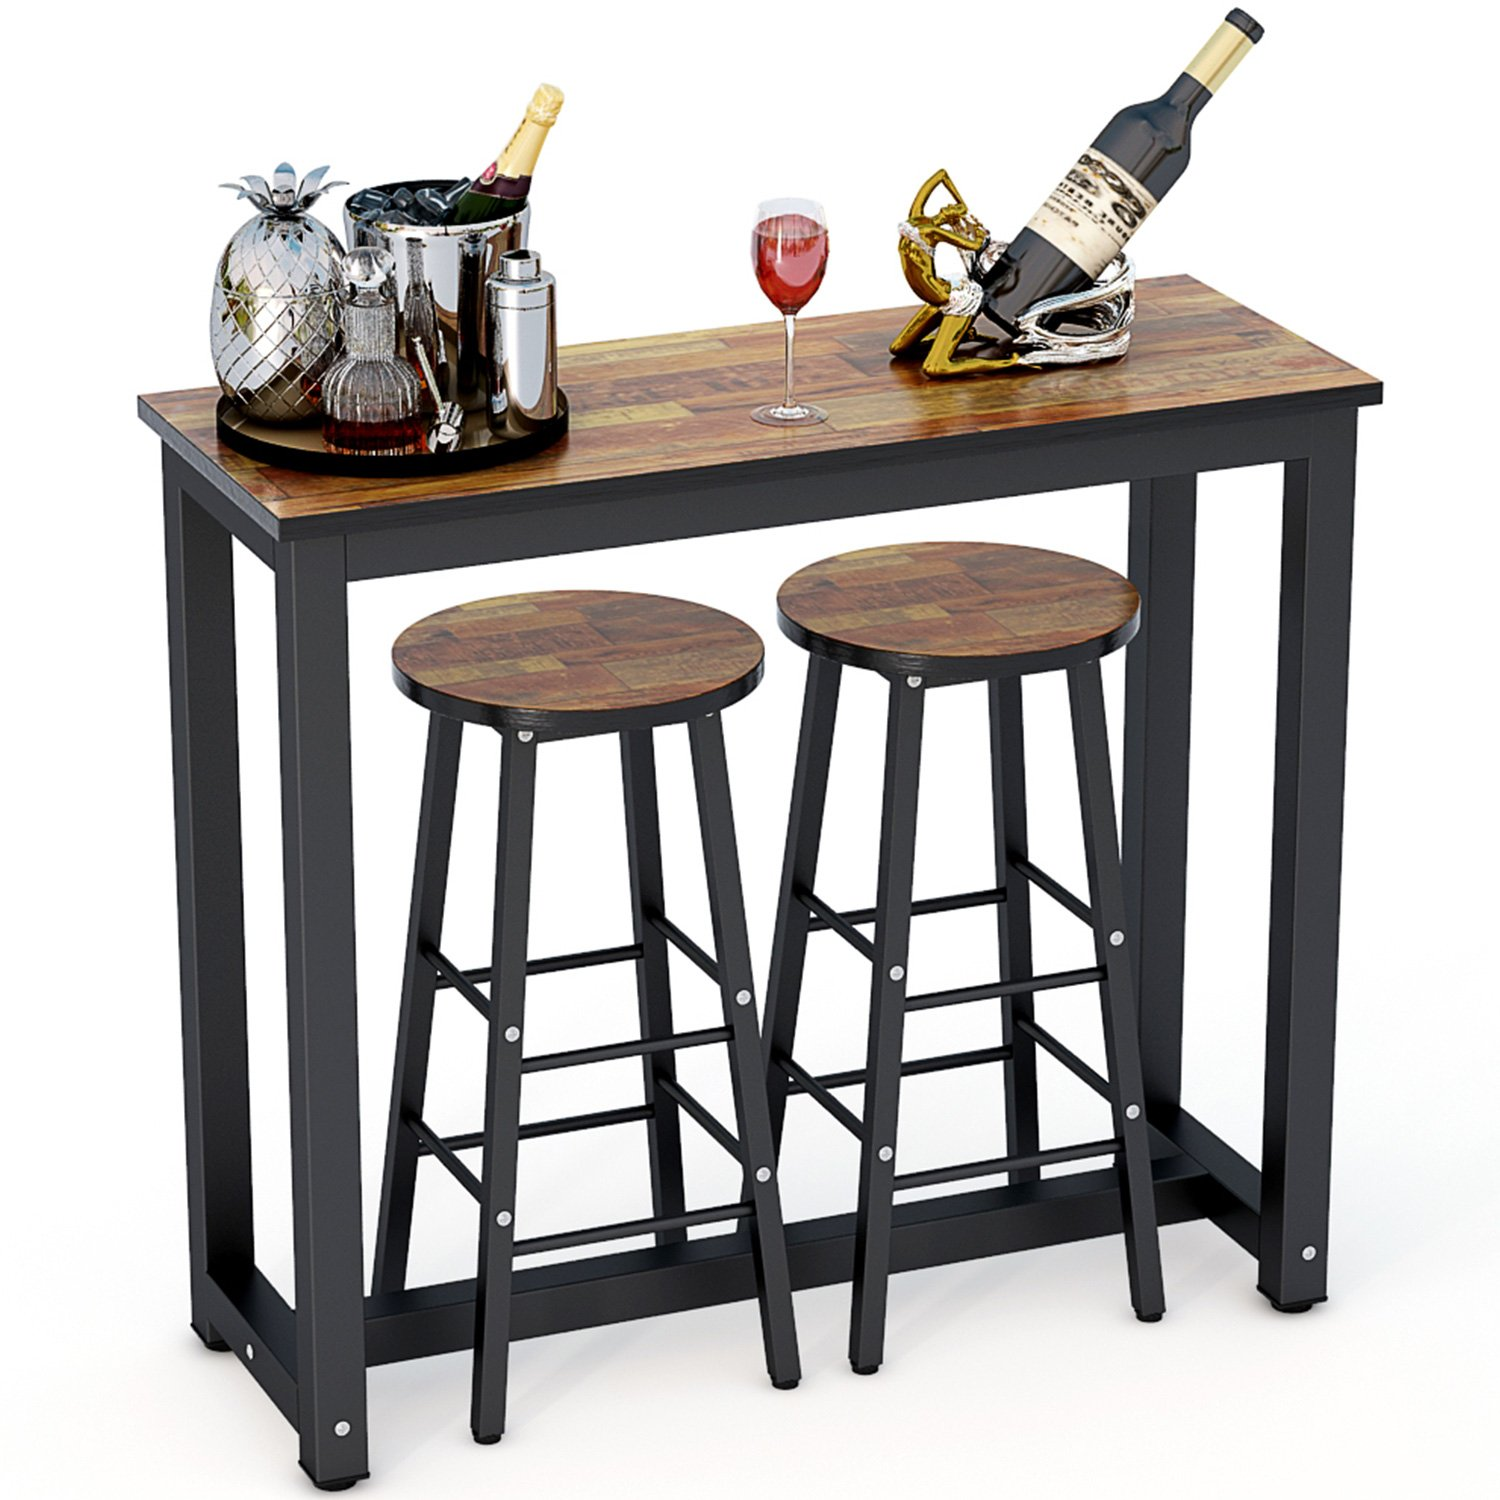 Tribesigns 3-Piece Pub Table Set, Counter Height Dining Table Set with 2 Bar Stools for Kitchen Nook, Dining Room, Living Room, Small Space